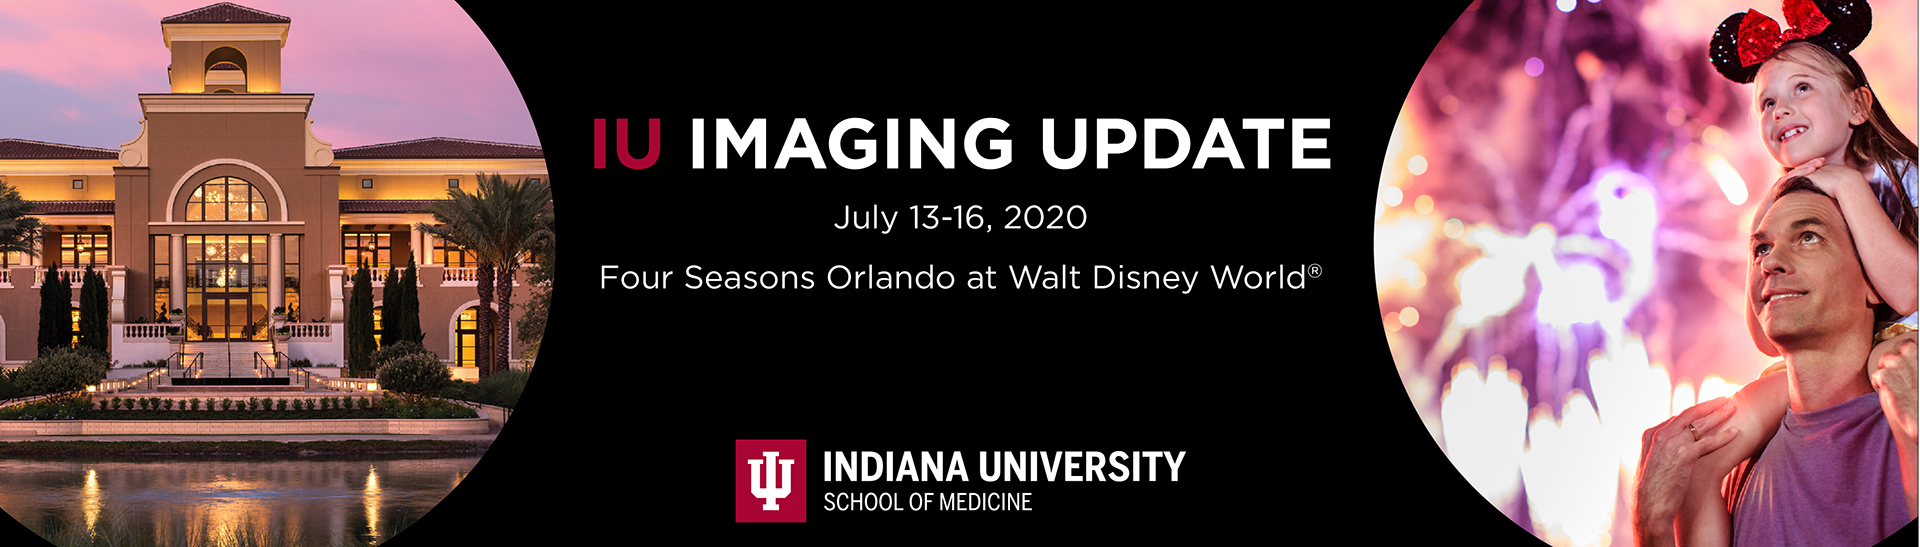 Indiana University Imaging Update July 2020